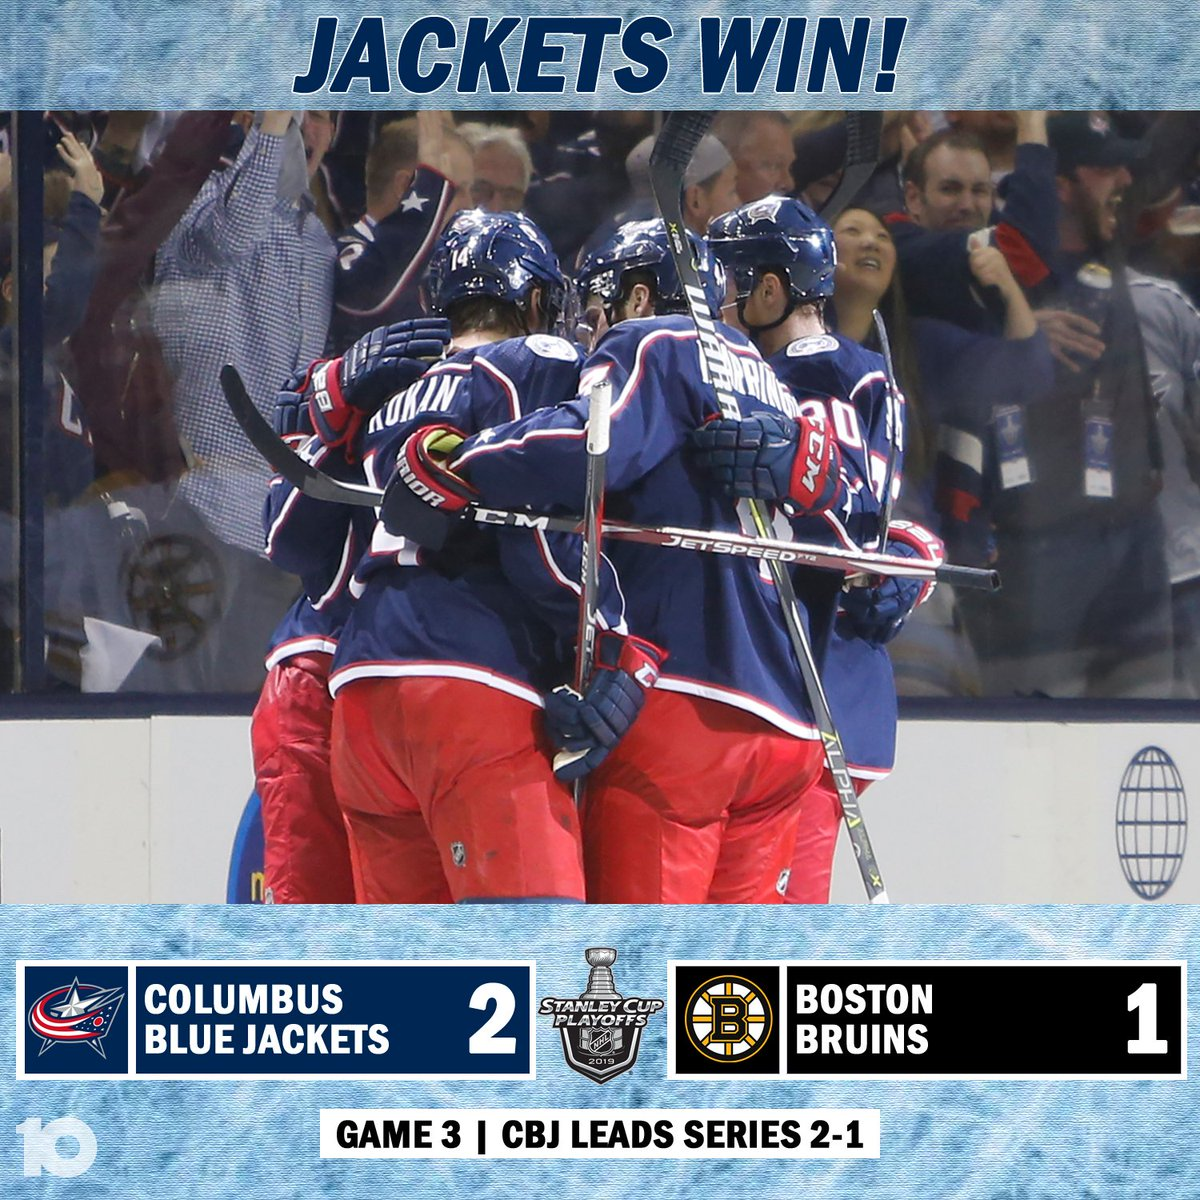 JACKETS WIN: The Columbus Blue Jackets have taken a 2-1 series lead against the Boston Bruins after a 2-1 win Tuesday night in Game 3 http://bit.ly/2J4Iw3H  #10TV #CBJ